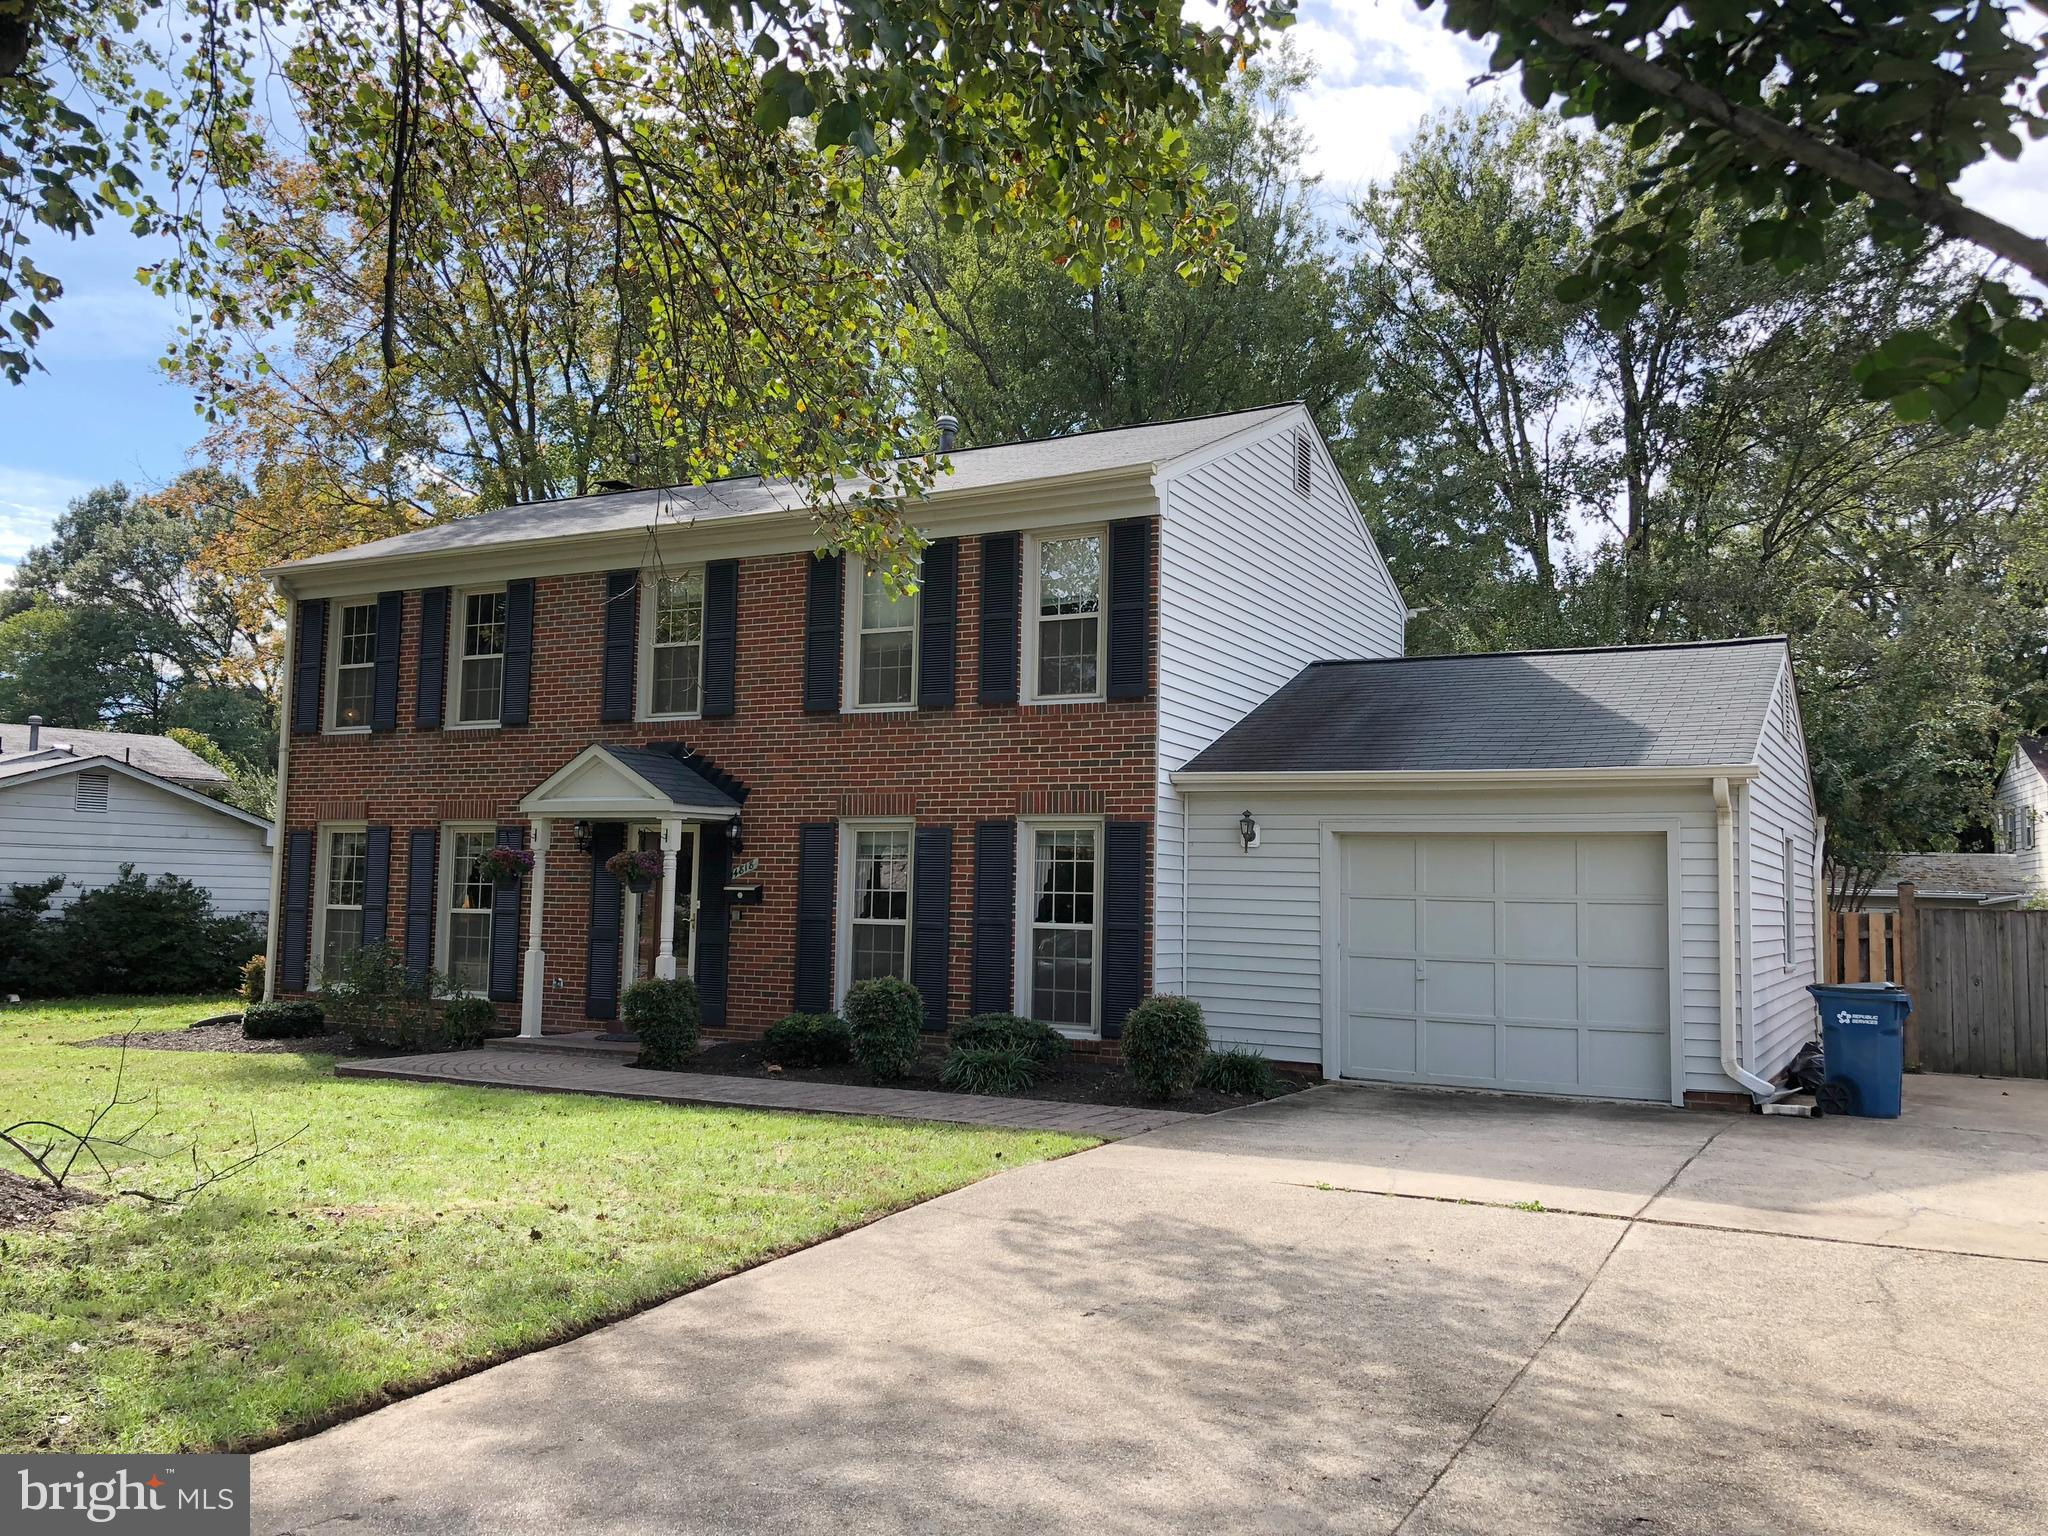 This fully furnished colonial is MOVE-IN ready! Four bedrooms and two and a half bathrooms on three finished levels.Hardwood floors on main level and upper level. Private sunroom leads to a large deck with professional landscaped backyard. Top schools, Woodson pyramid!